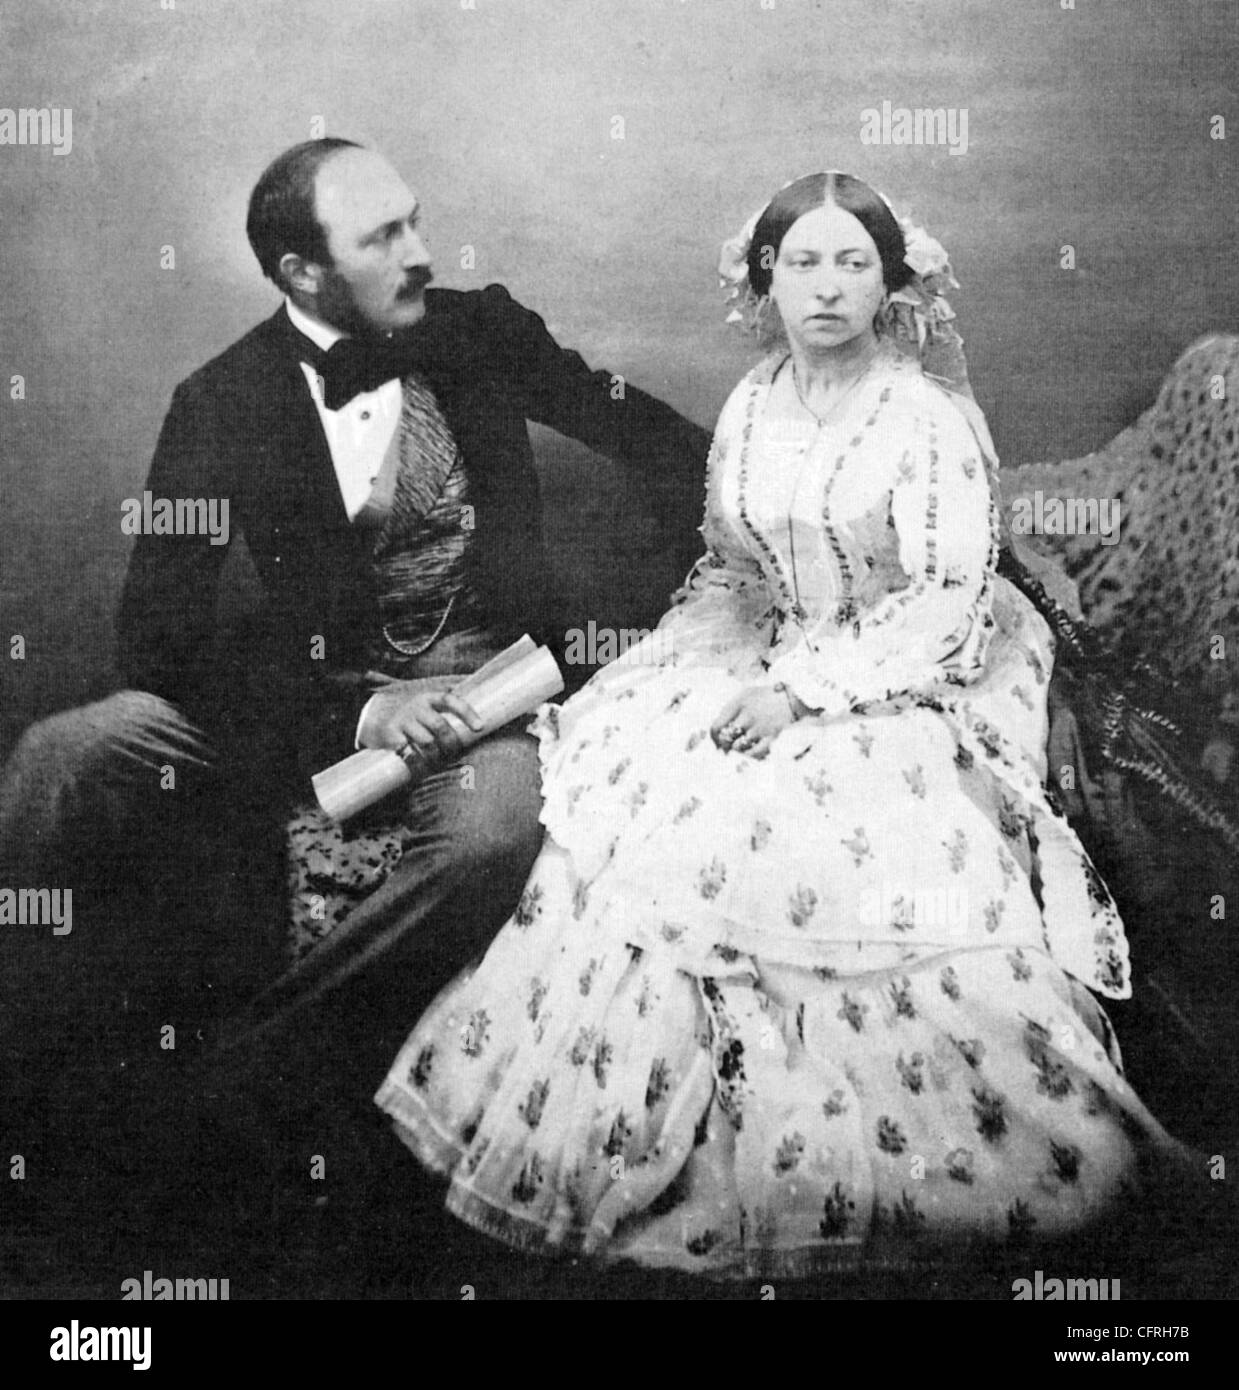 QUEEN VICTORIA and Prince Albert in 1854 when both were 35 years old. - Stock Image